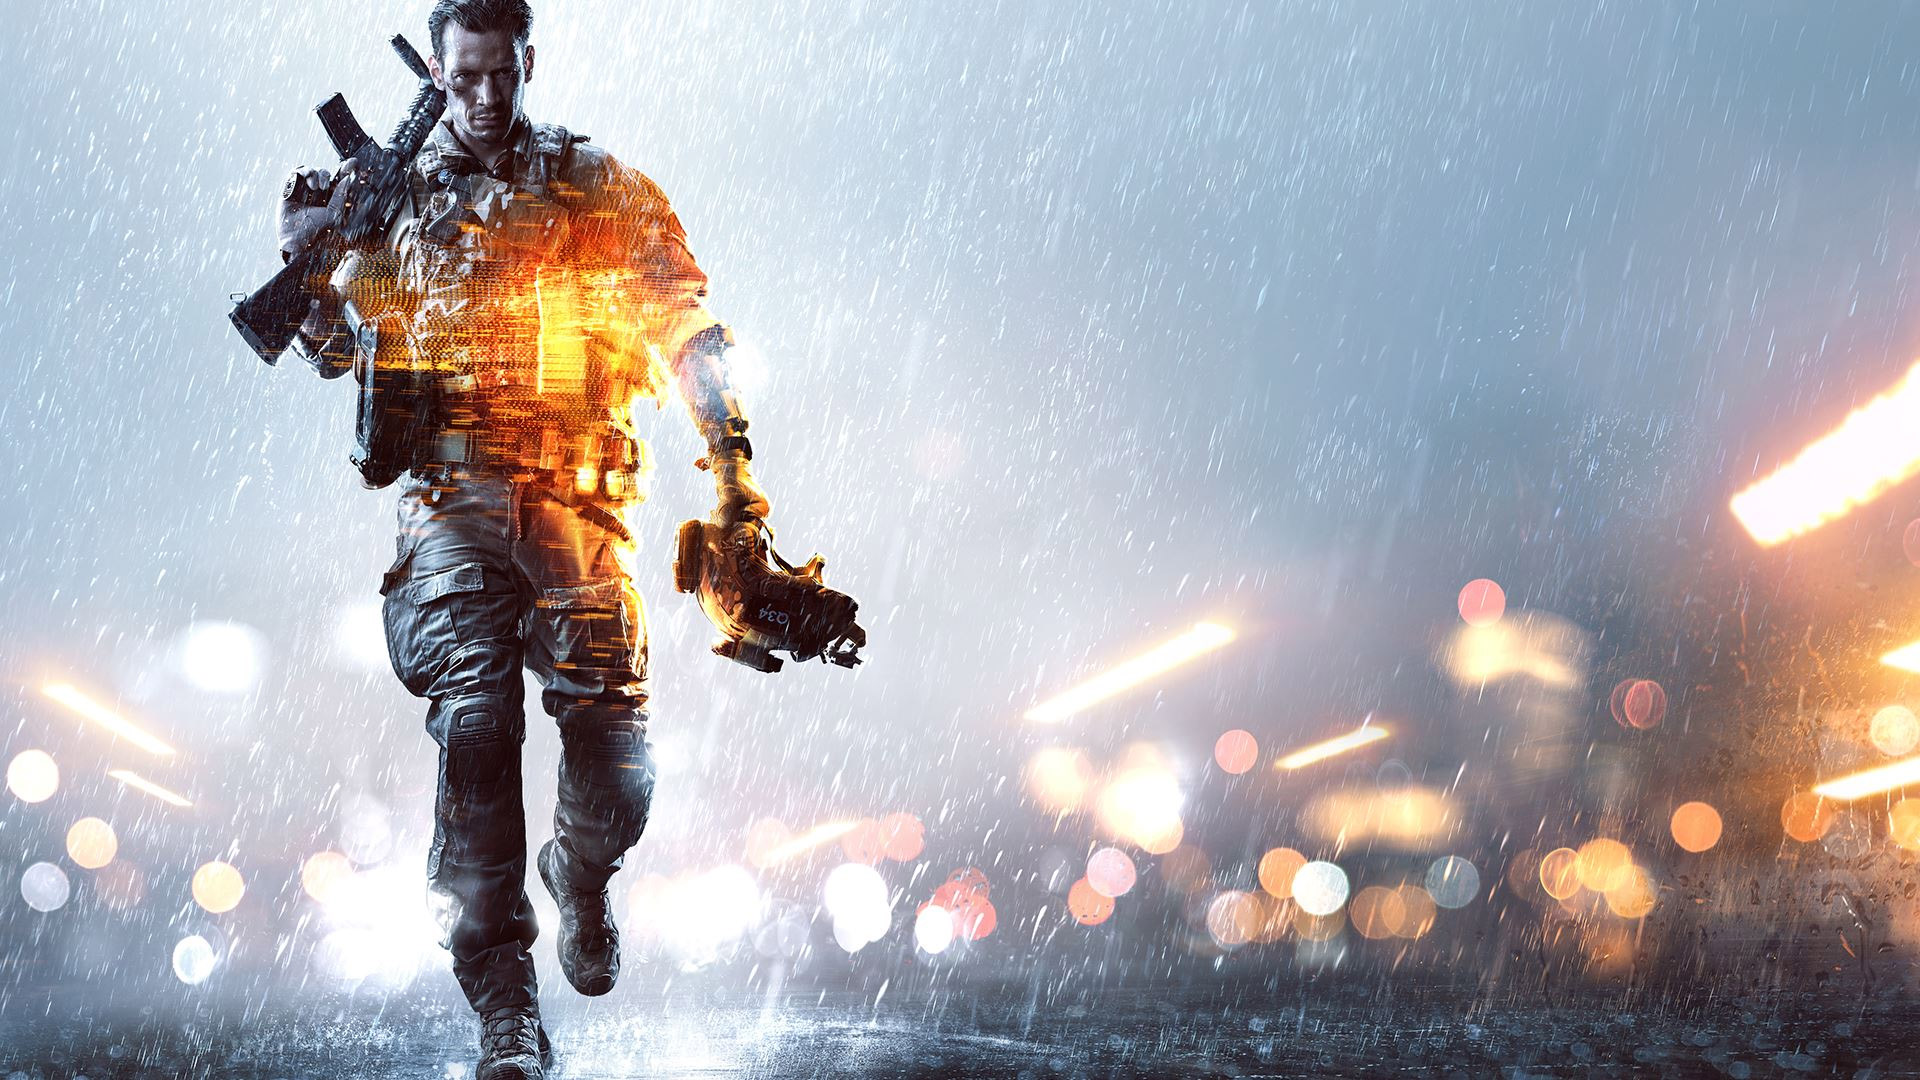 battlefield 4 has adopted a new user interface on consoles